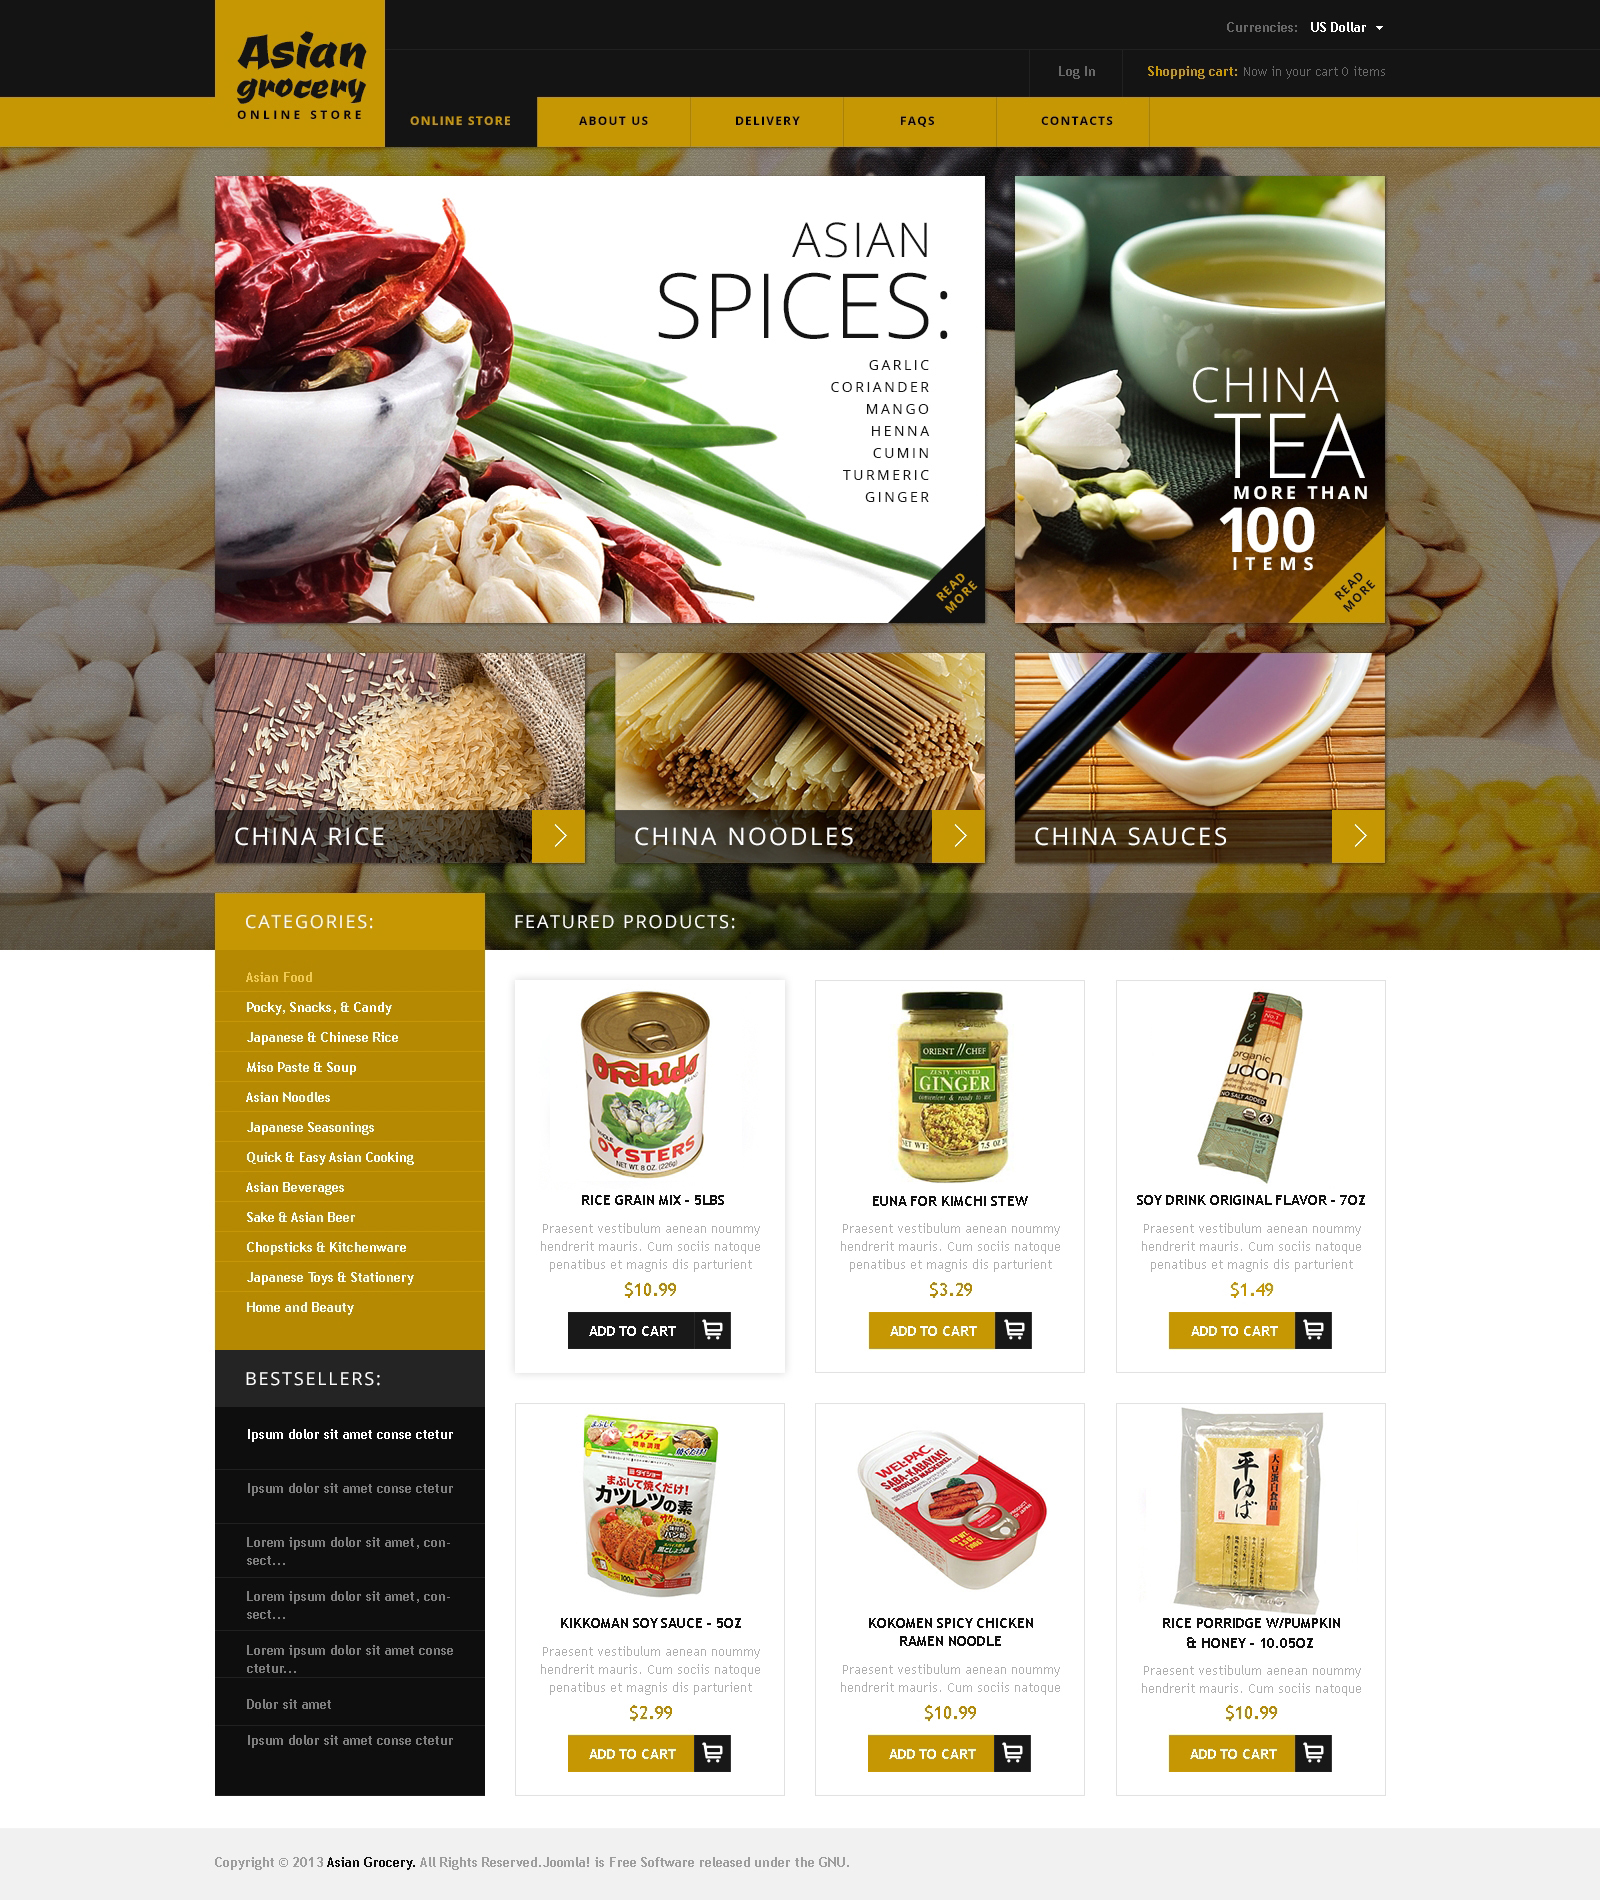 Asian Grocery VirtueMart Template